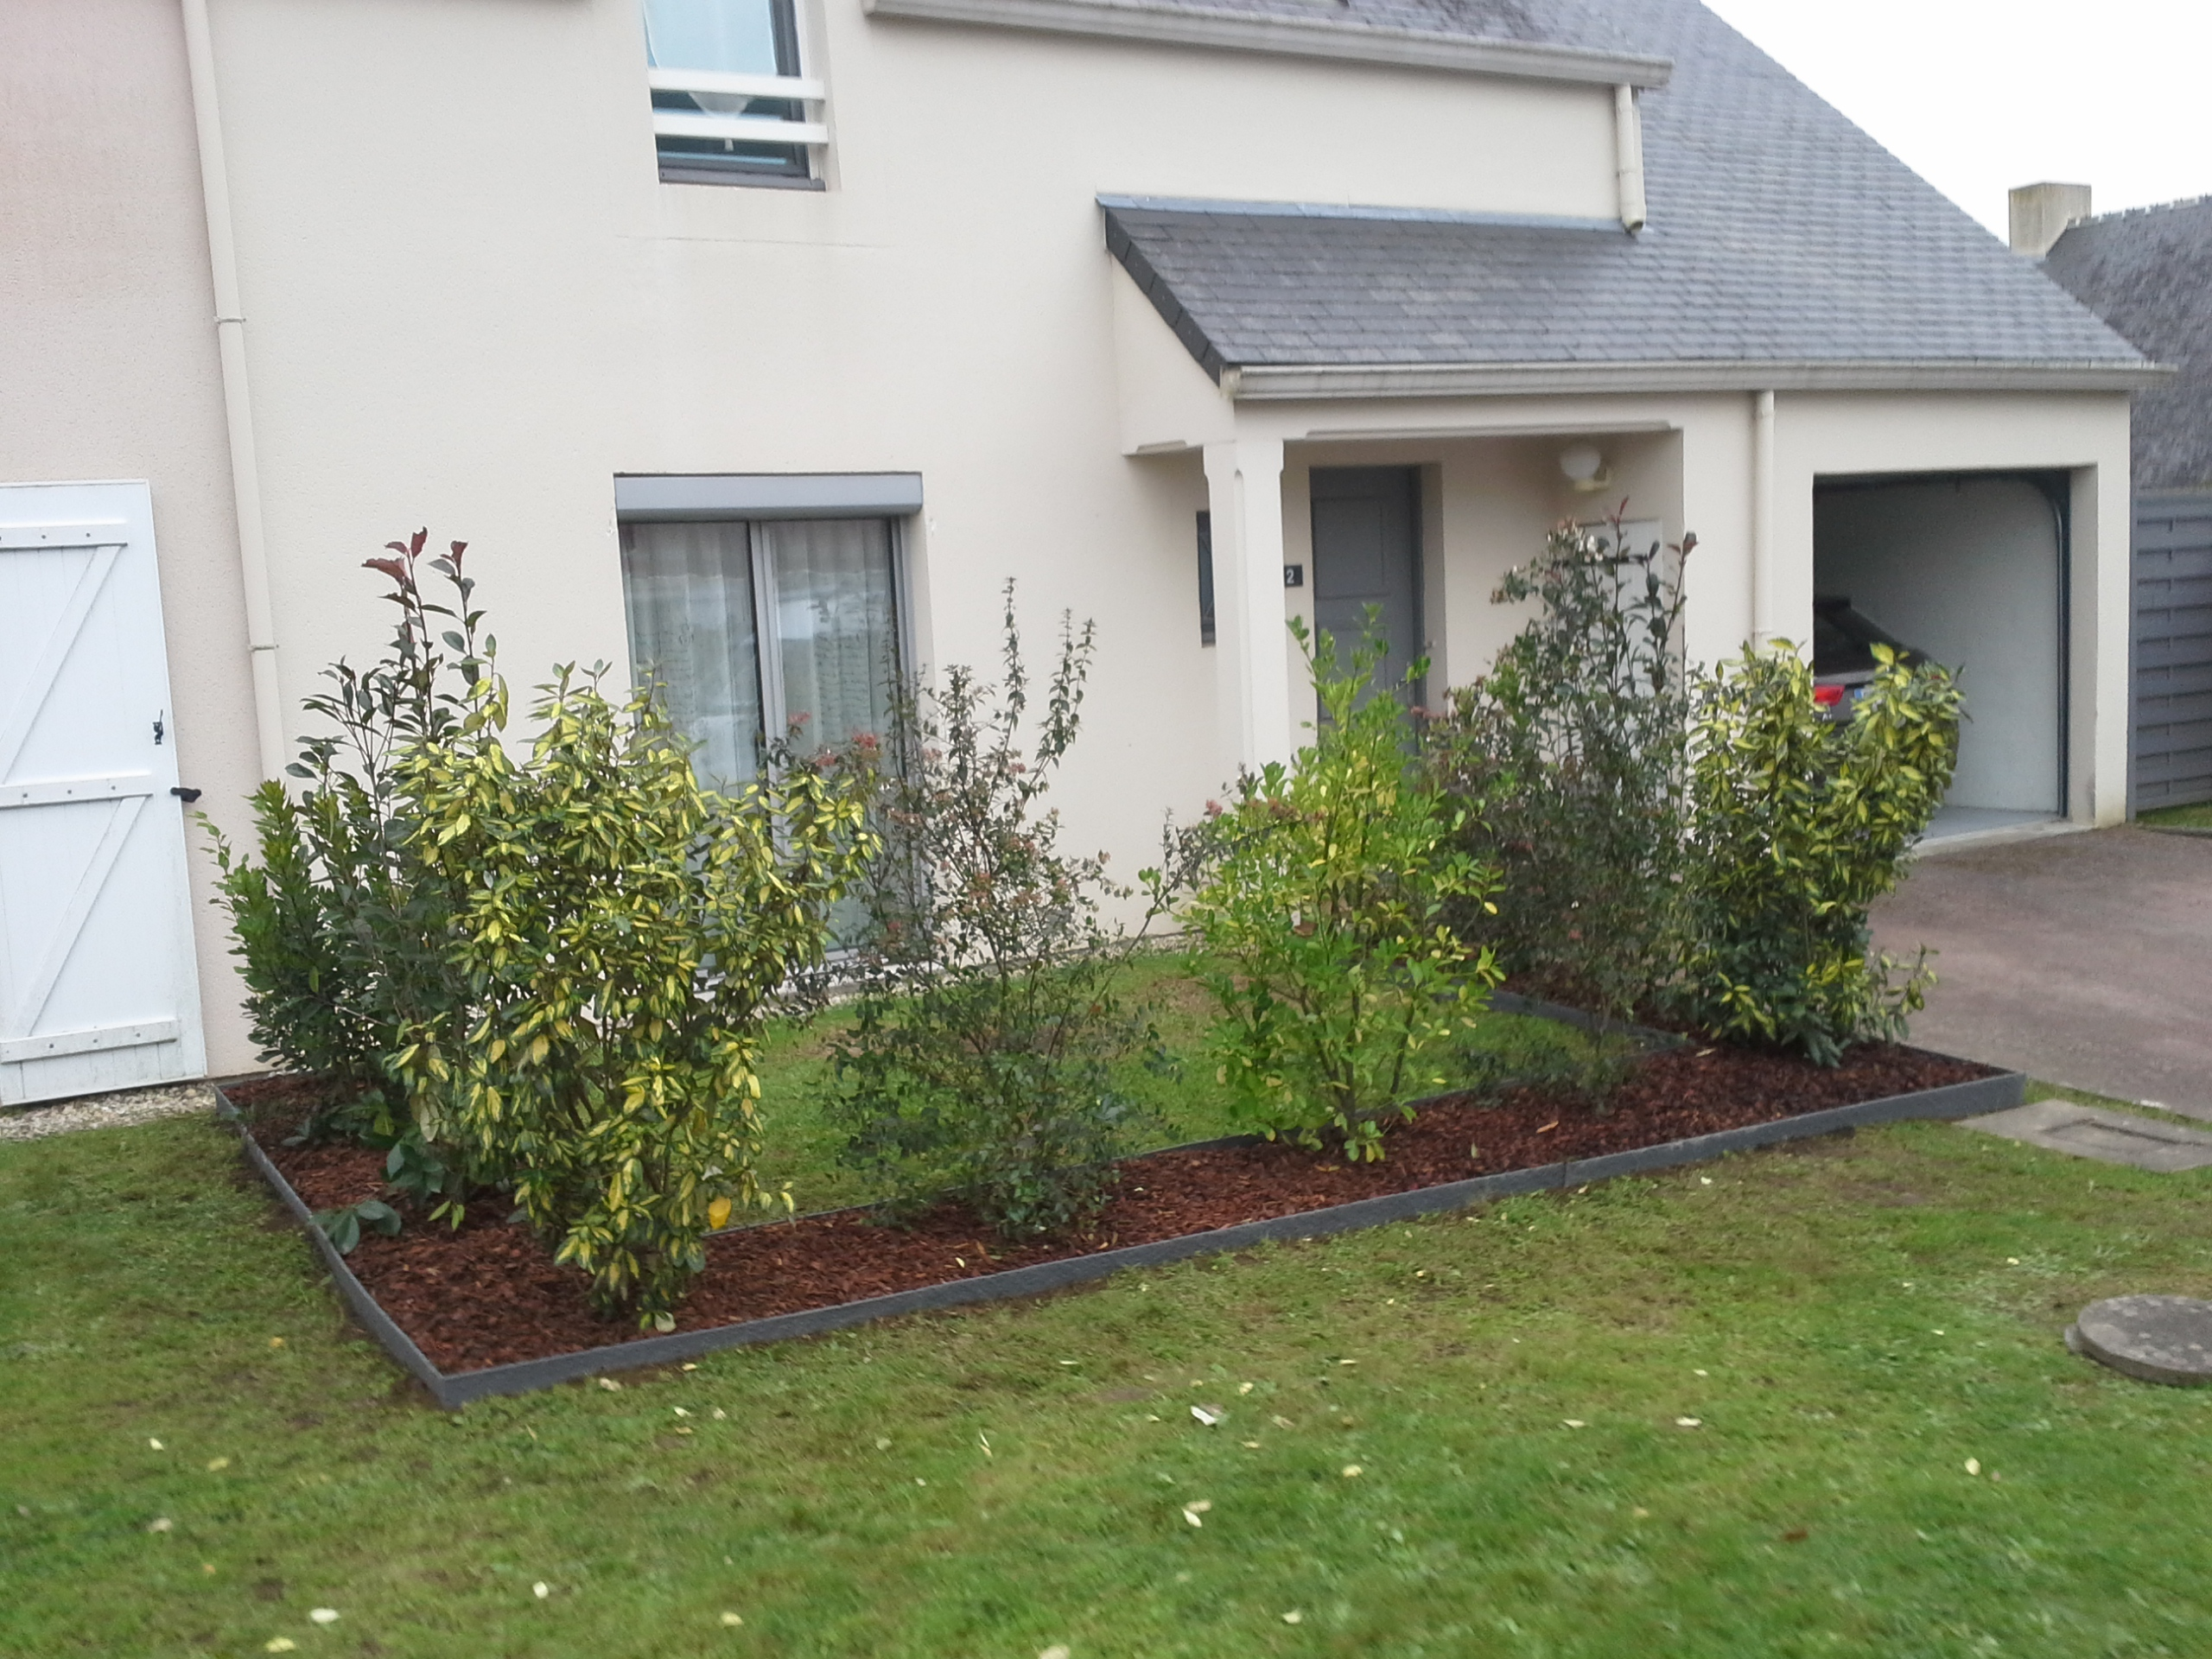 Am nagement ext rieur for Amenagement jardin bordure